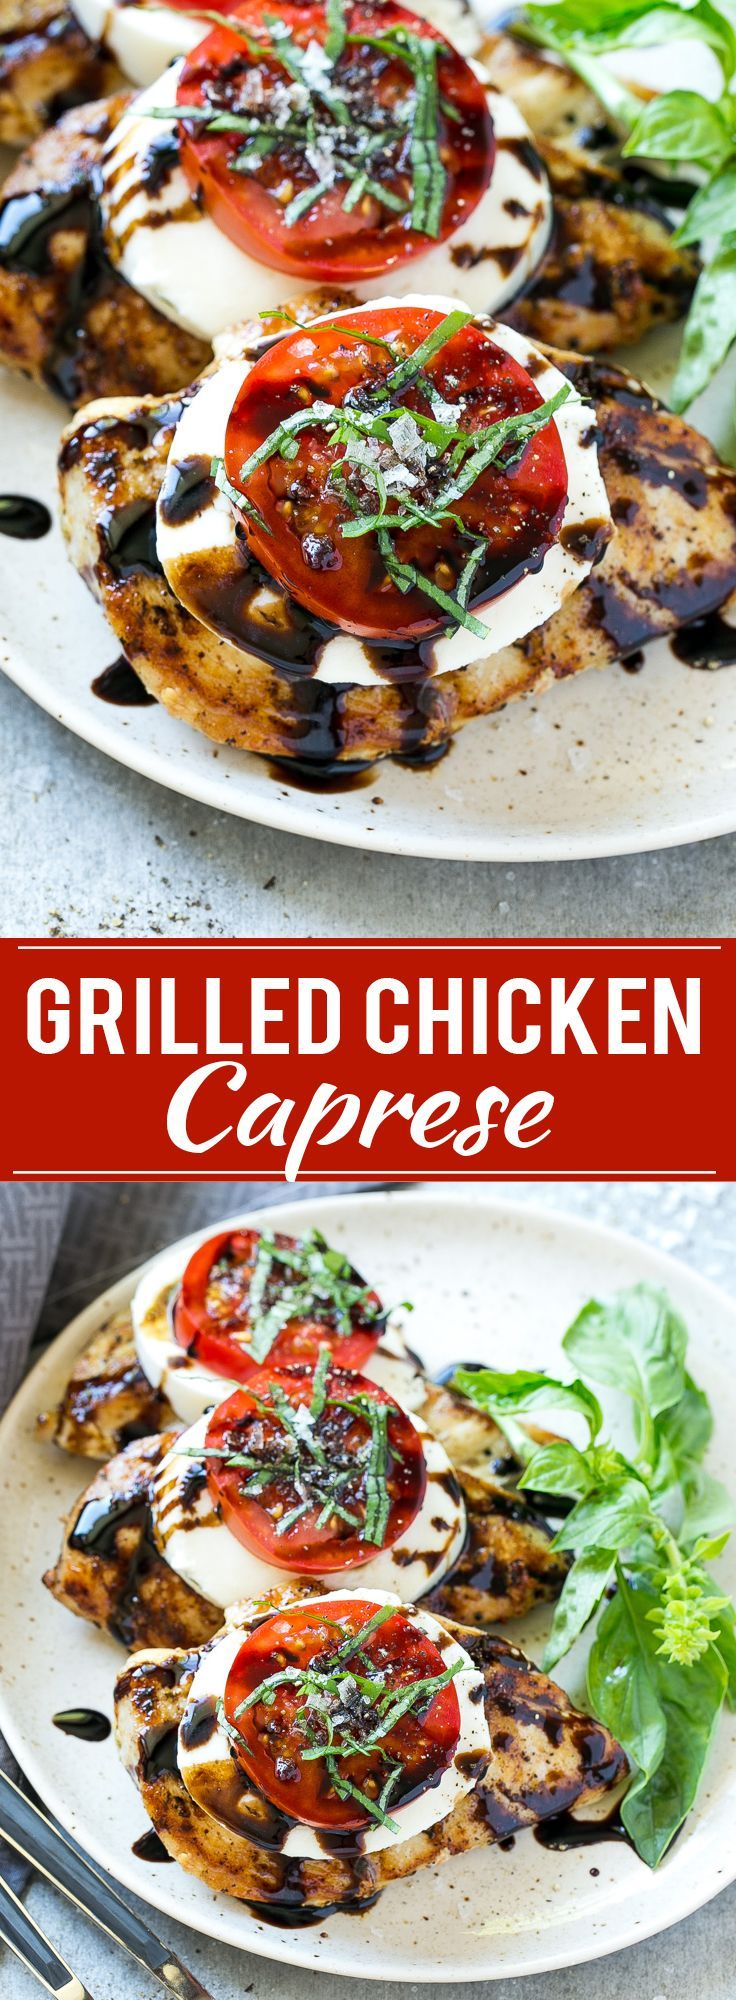 recipe for chicken caprese is grilled seasoned chicken, topped with fresh mozzarella, ripe tomatoes, basil and balsamic reduction. A quick…